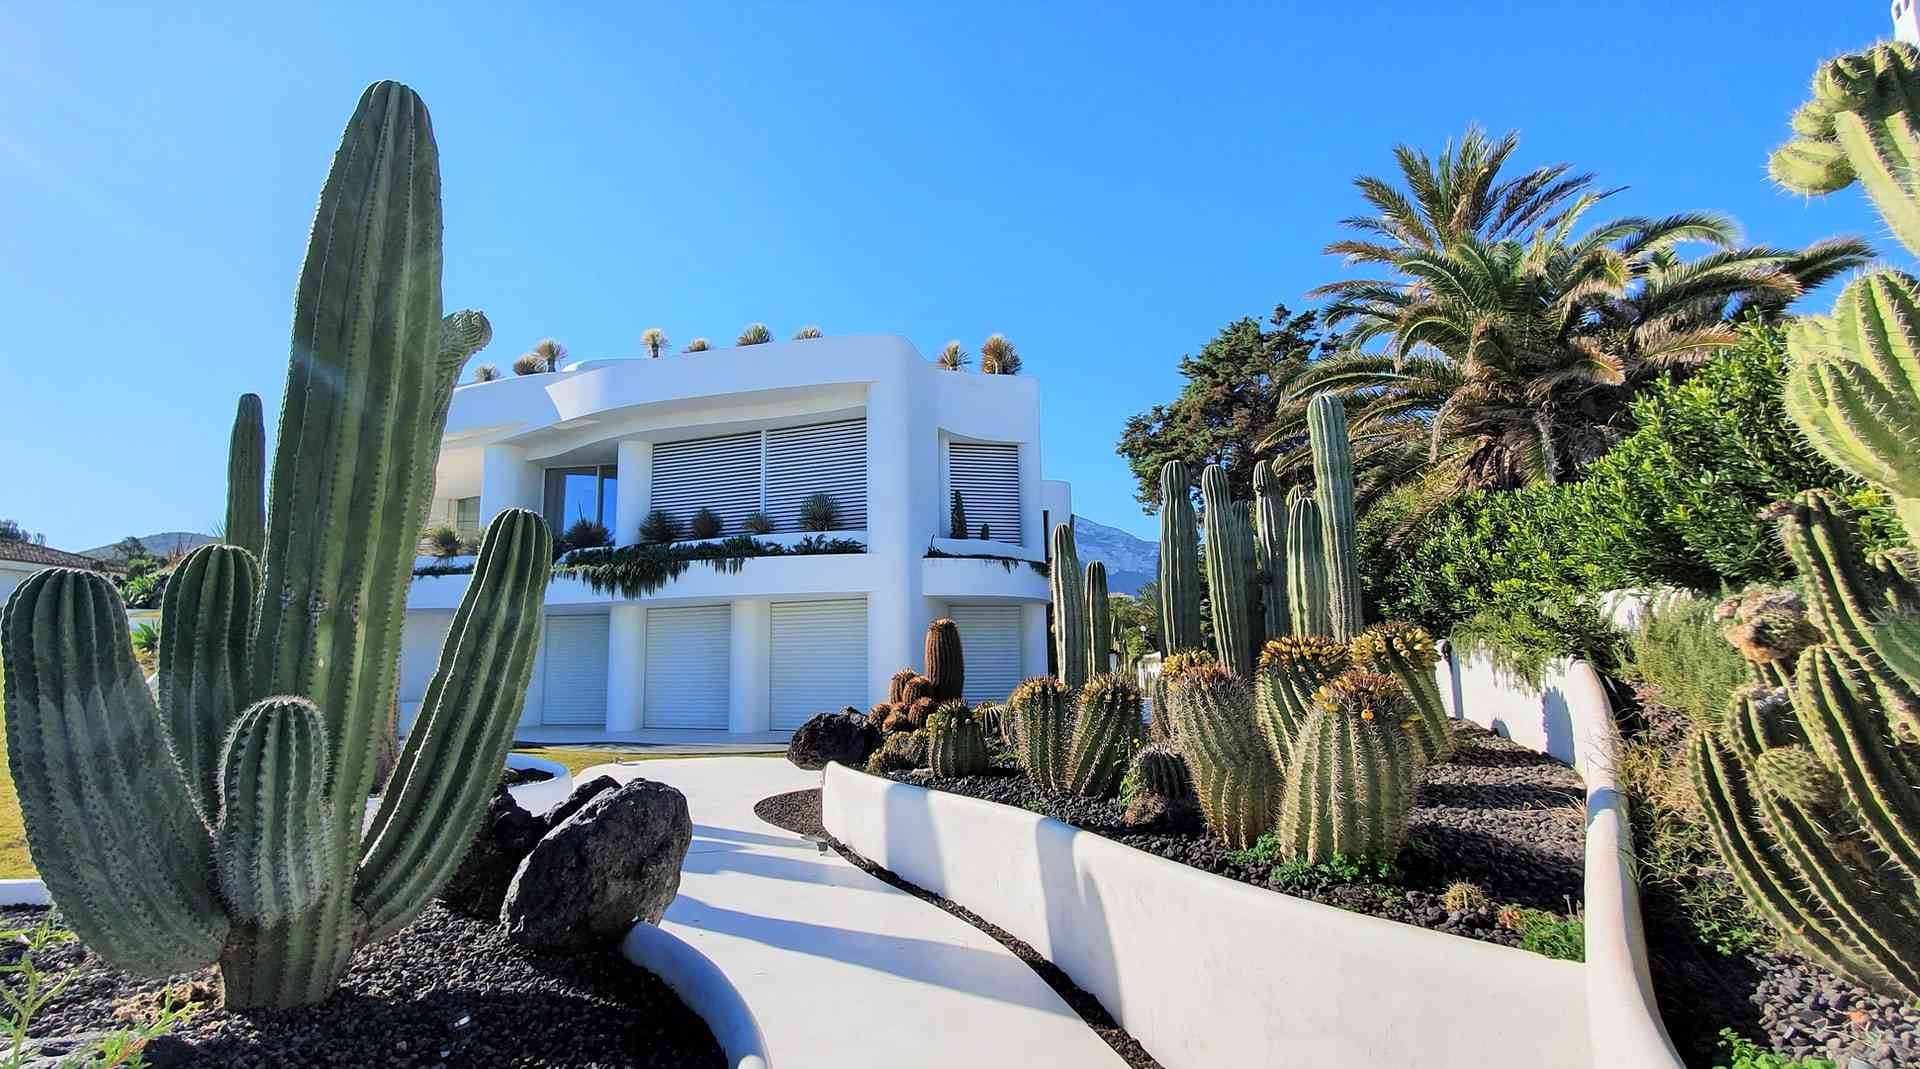 Xeriscape landscape with Cacti in front of white modern Mediterranean home